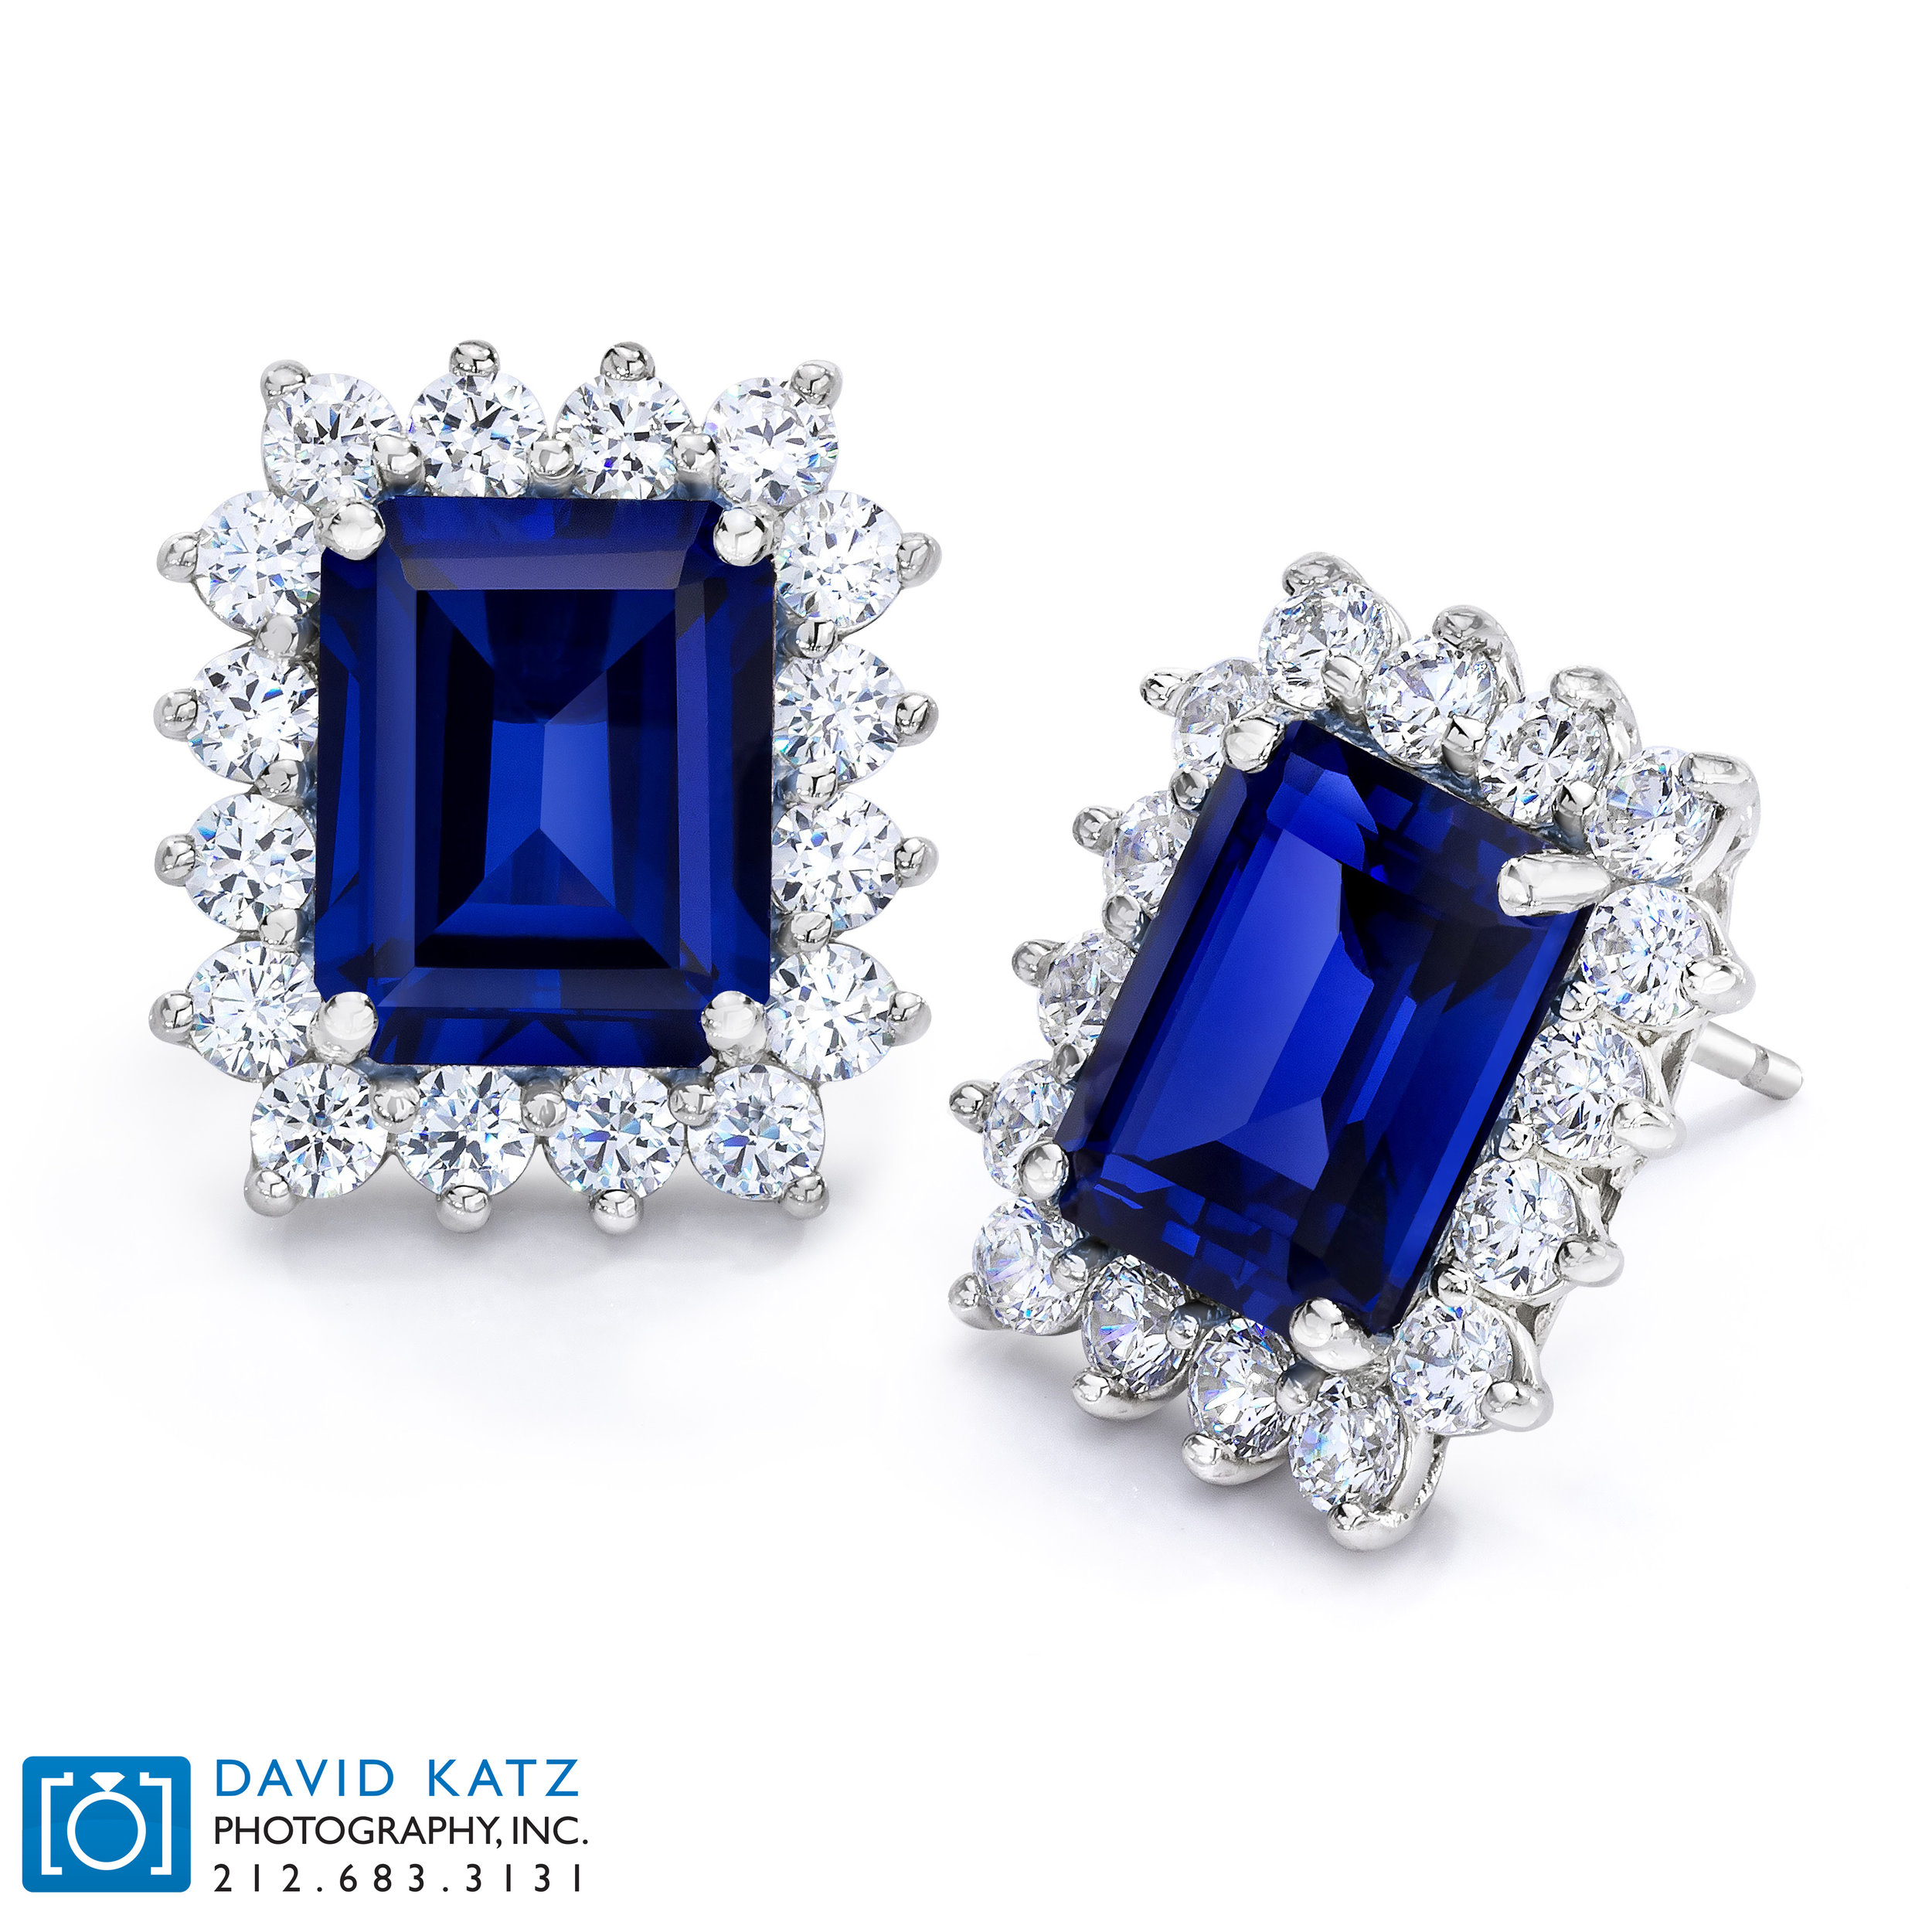 blue sapphire diamond emerald cut earrings_NEWLOGO.jpg